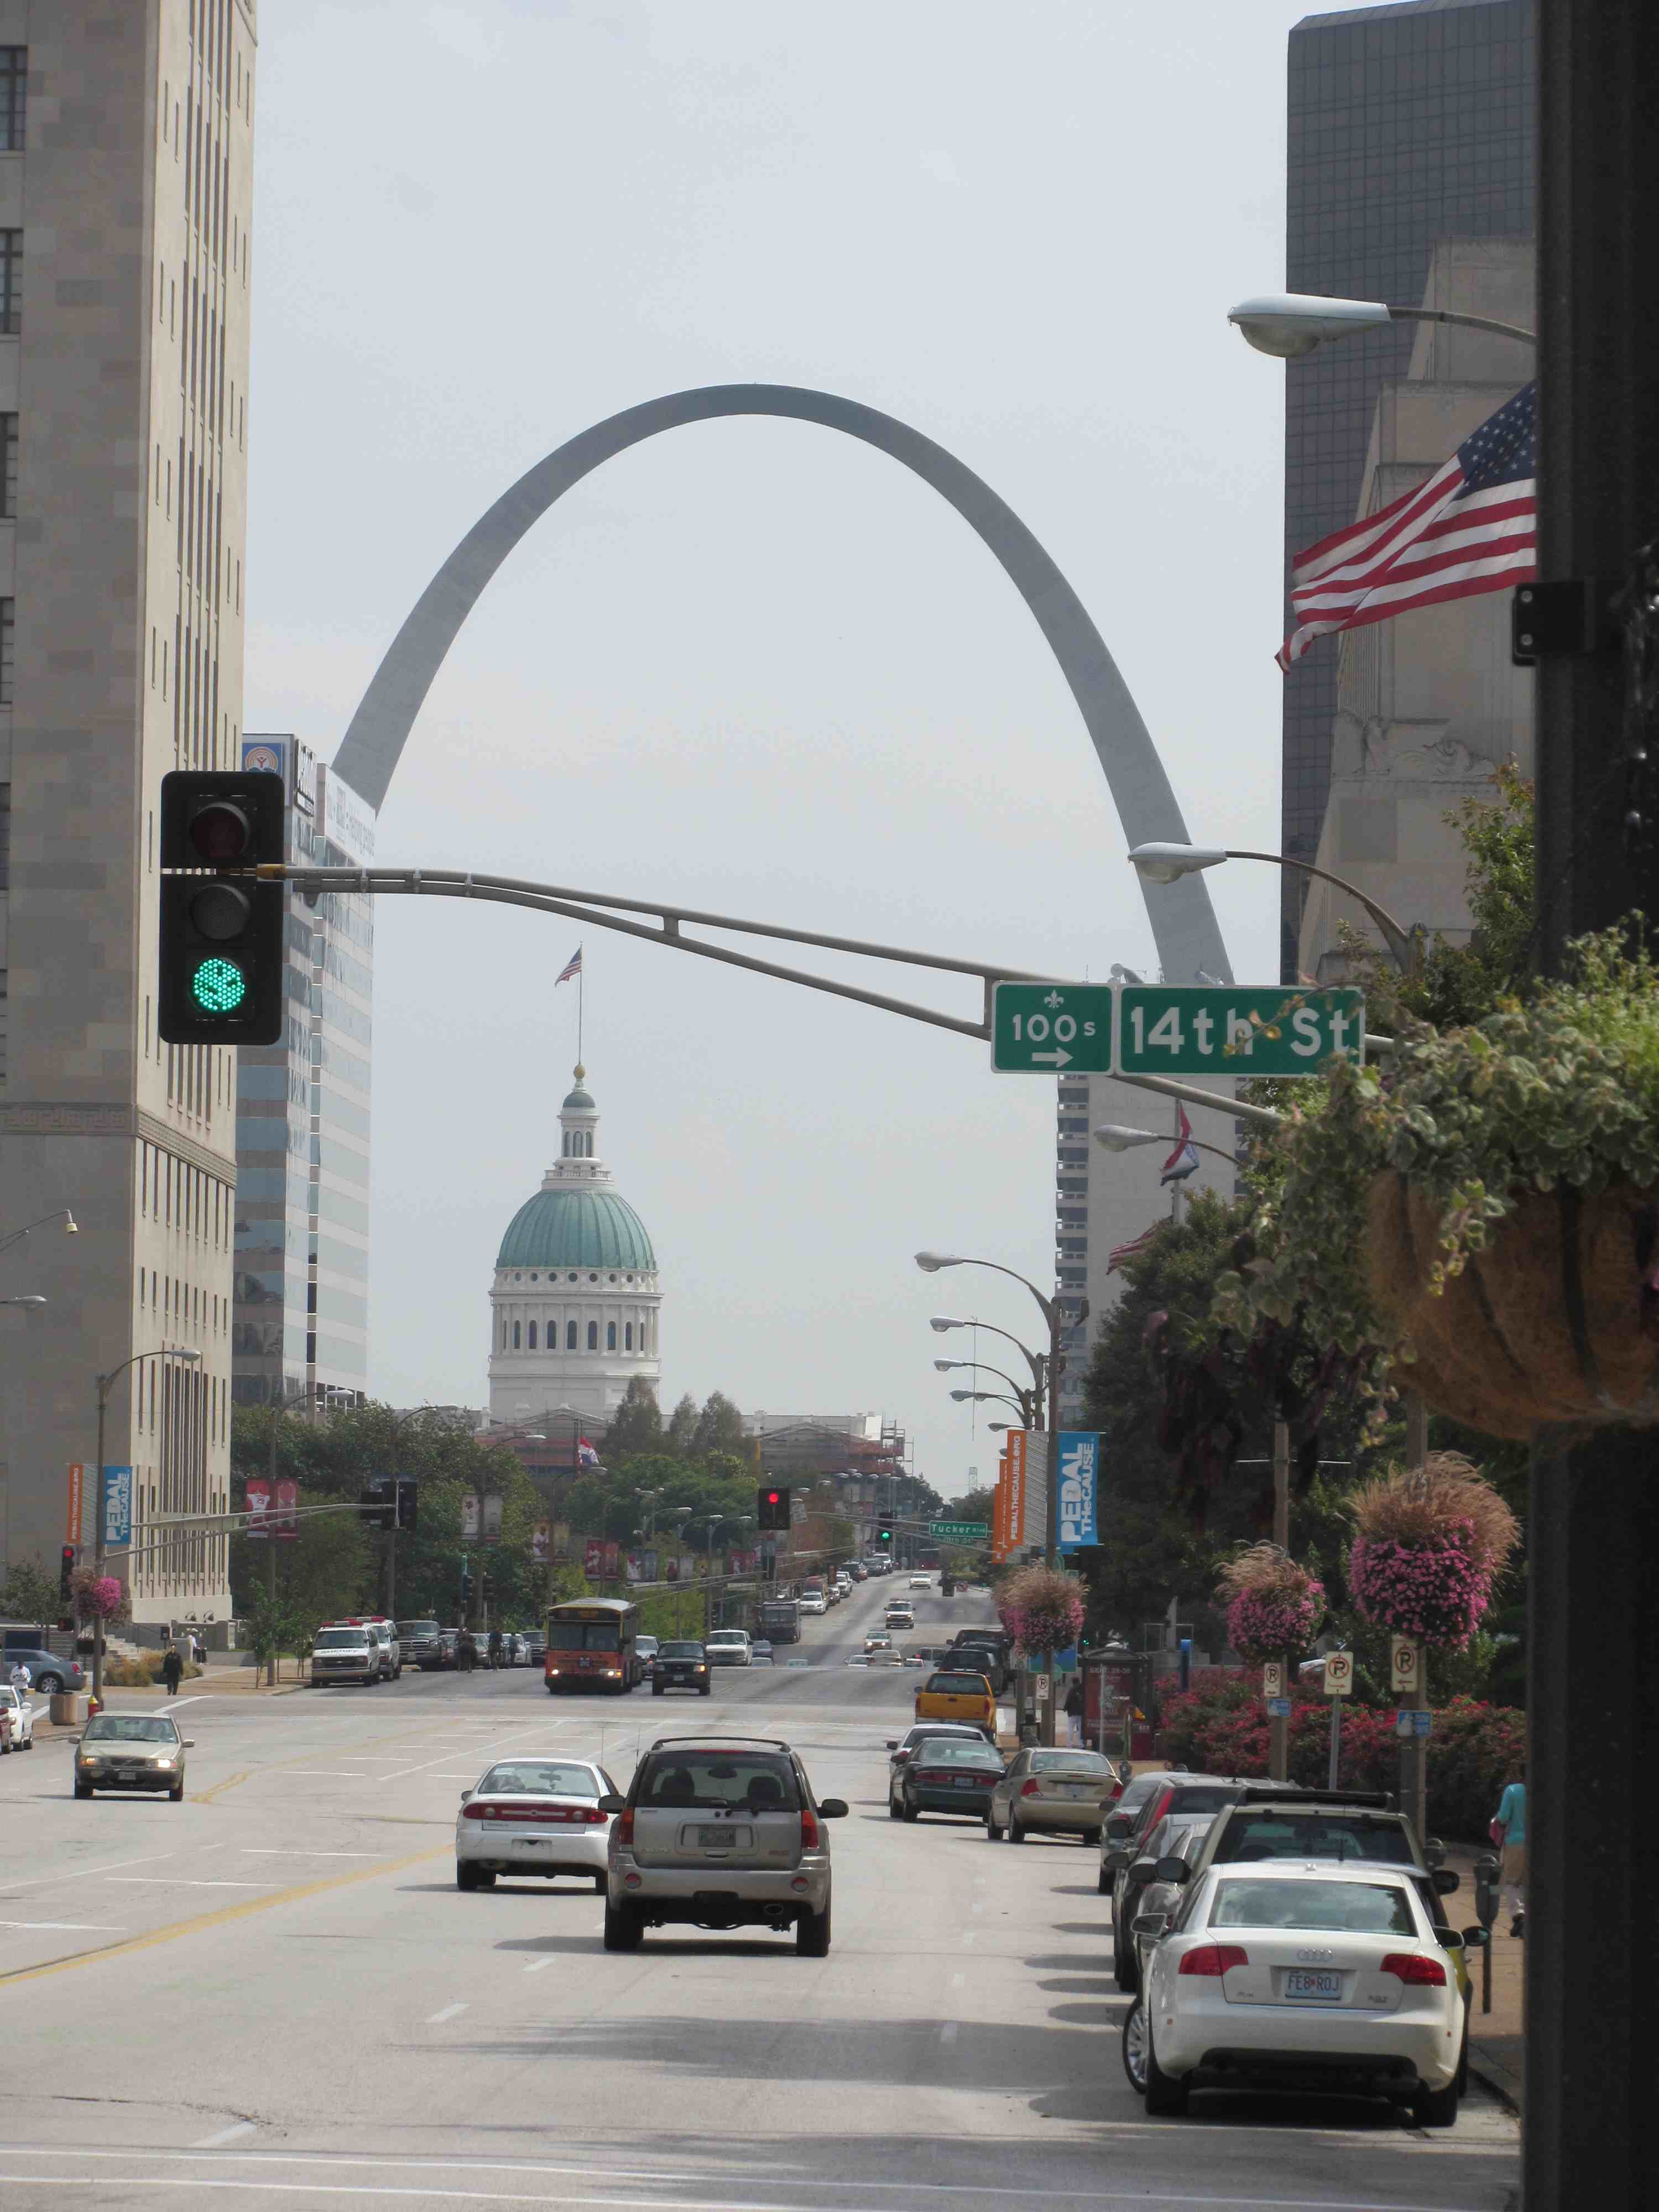 the St. Louis Arch, down the street from the Opera House